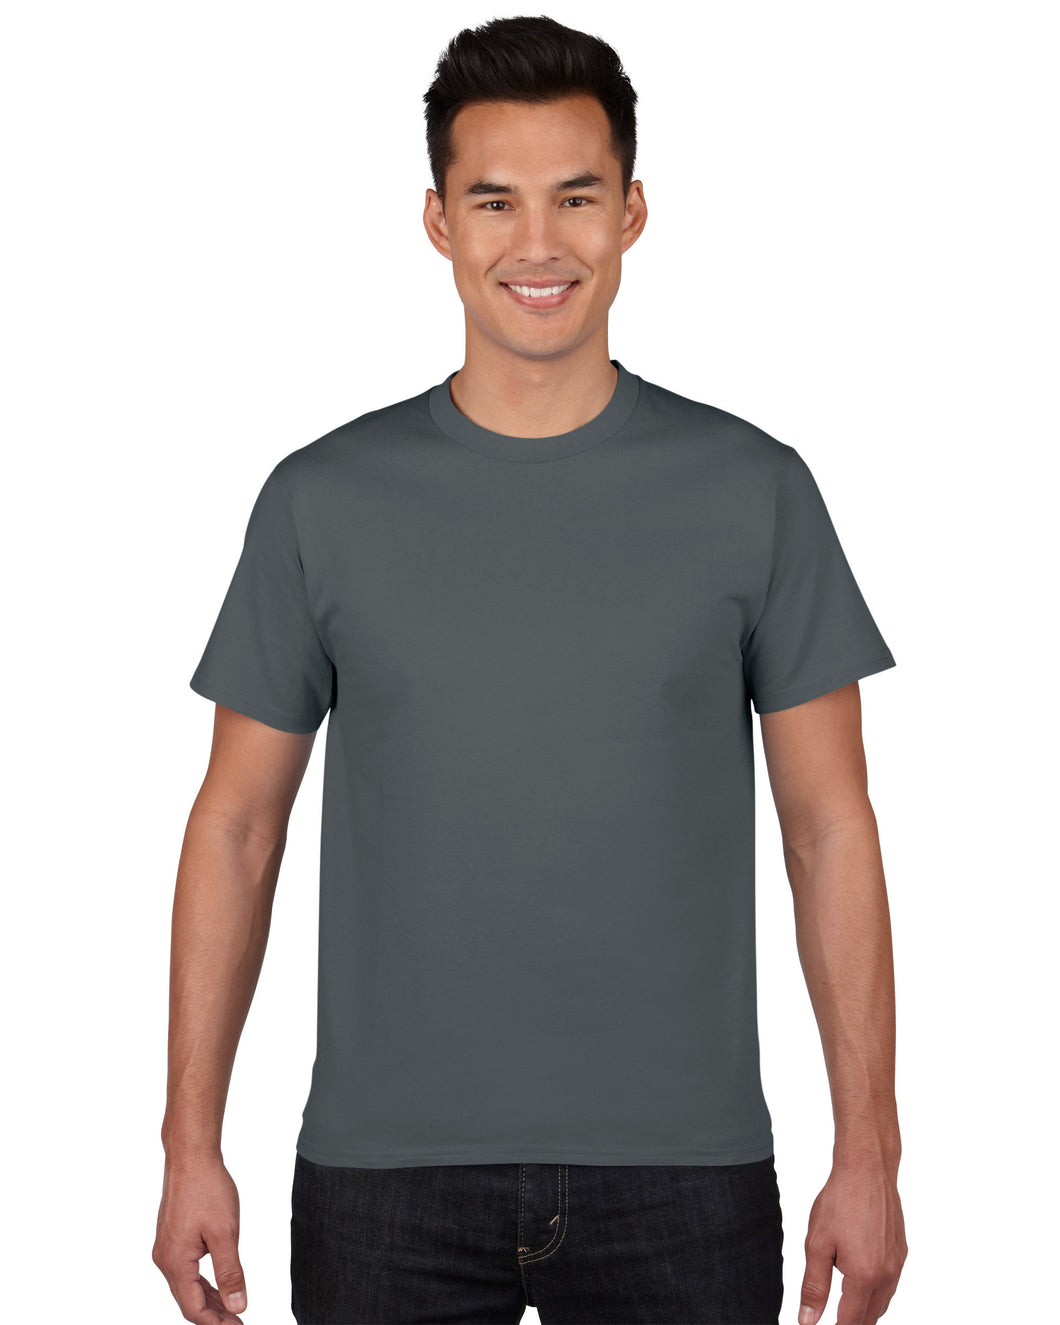 Classic round neck t-shirt in Ash